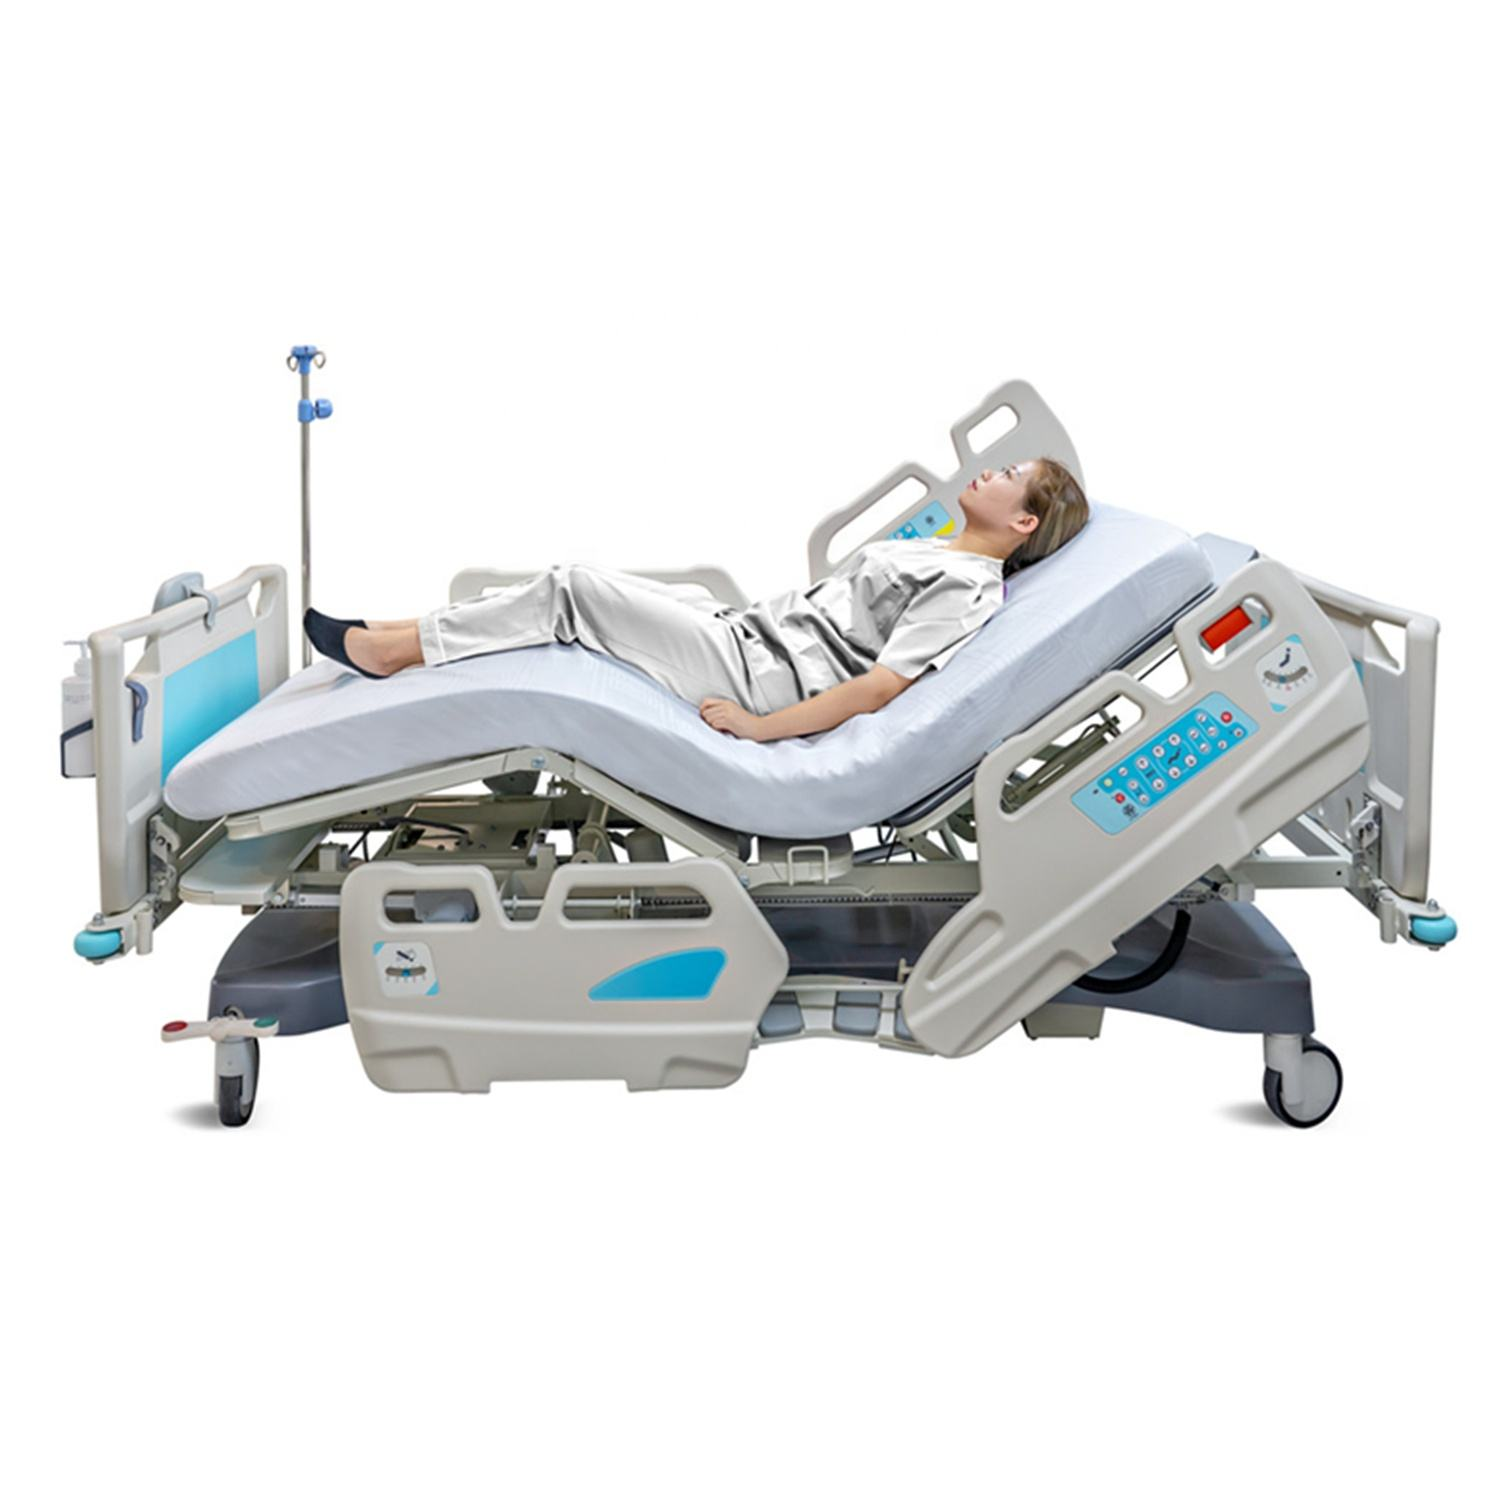 YFD8688K New Product Electric Hospital ICU Bed